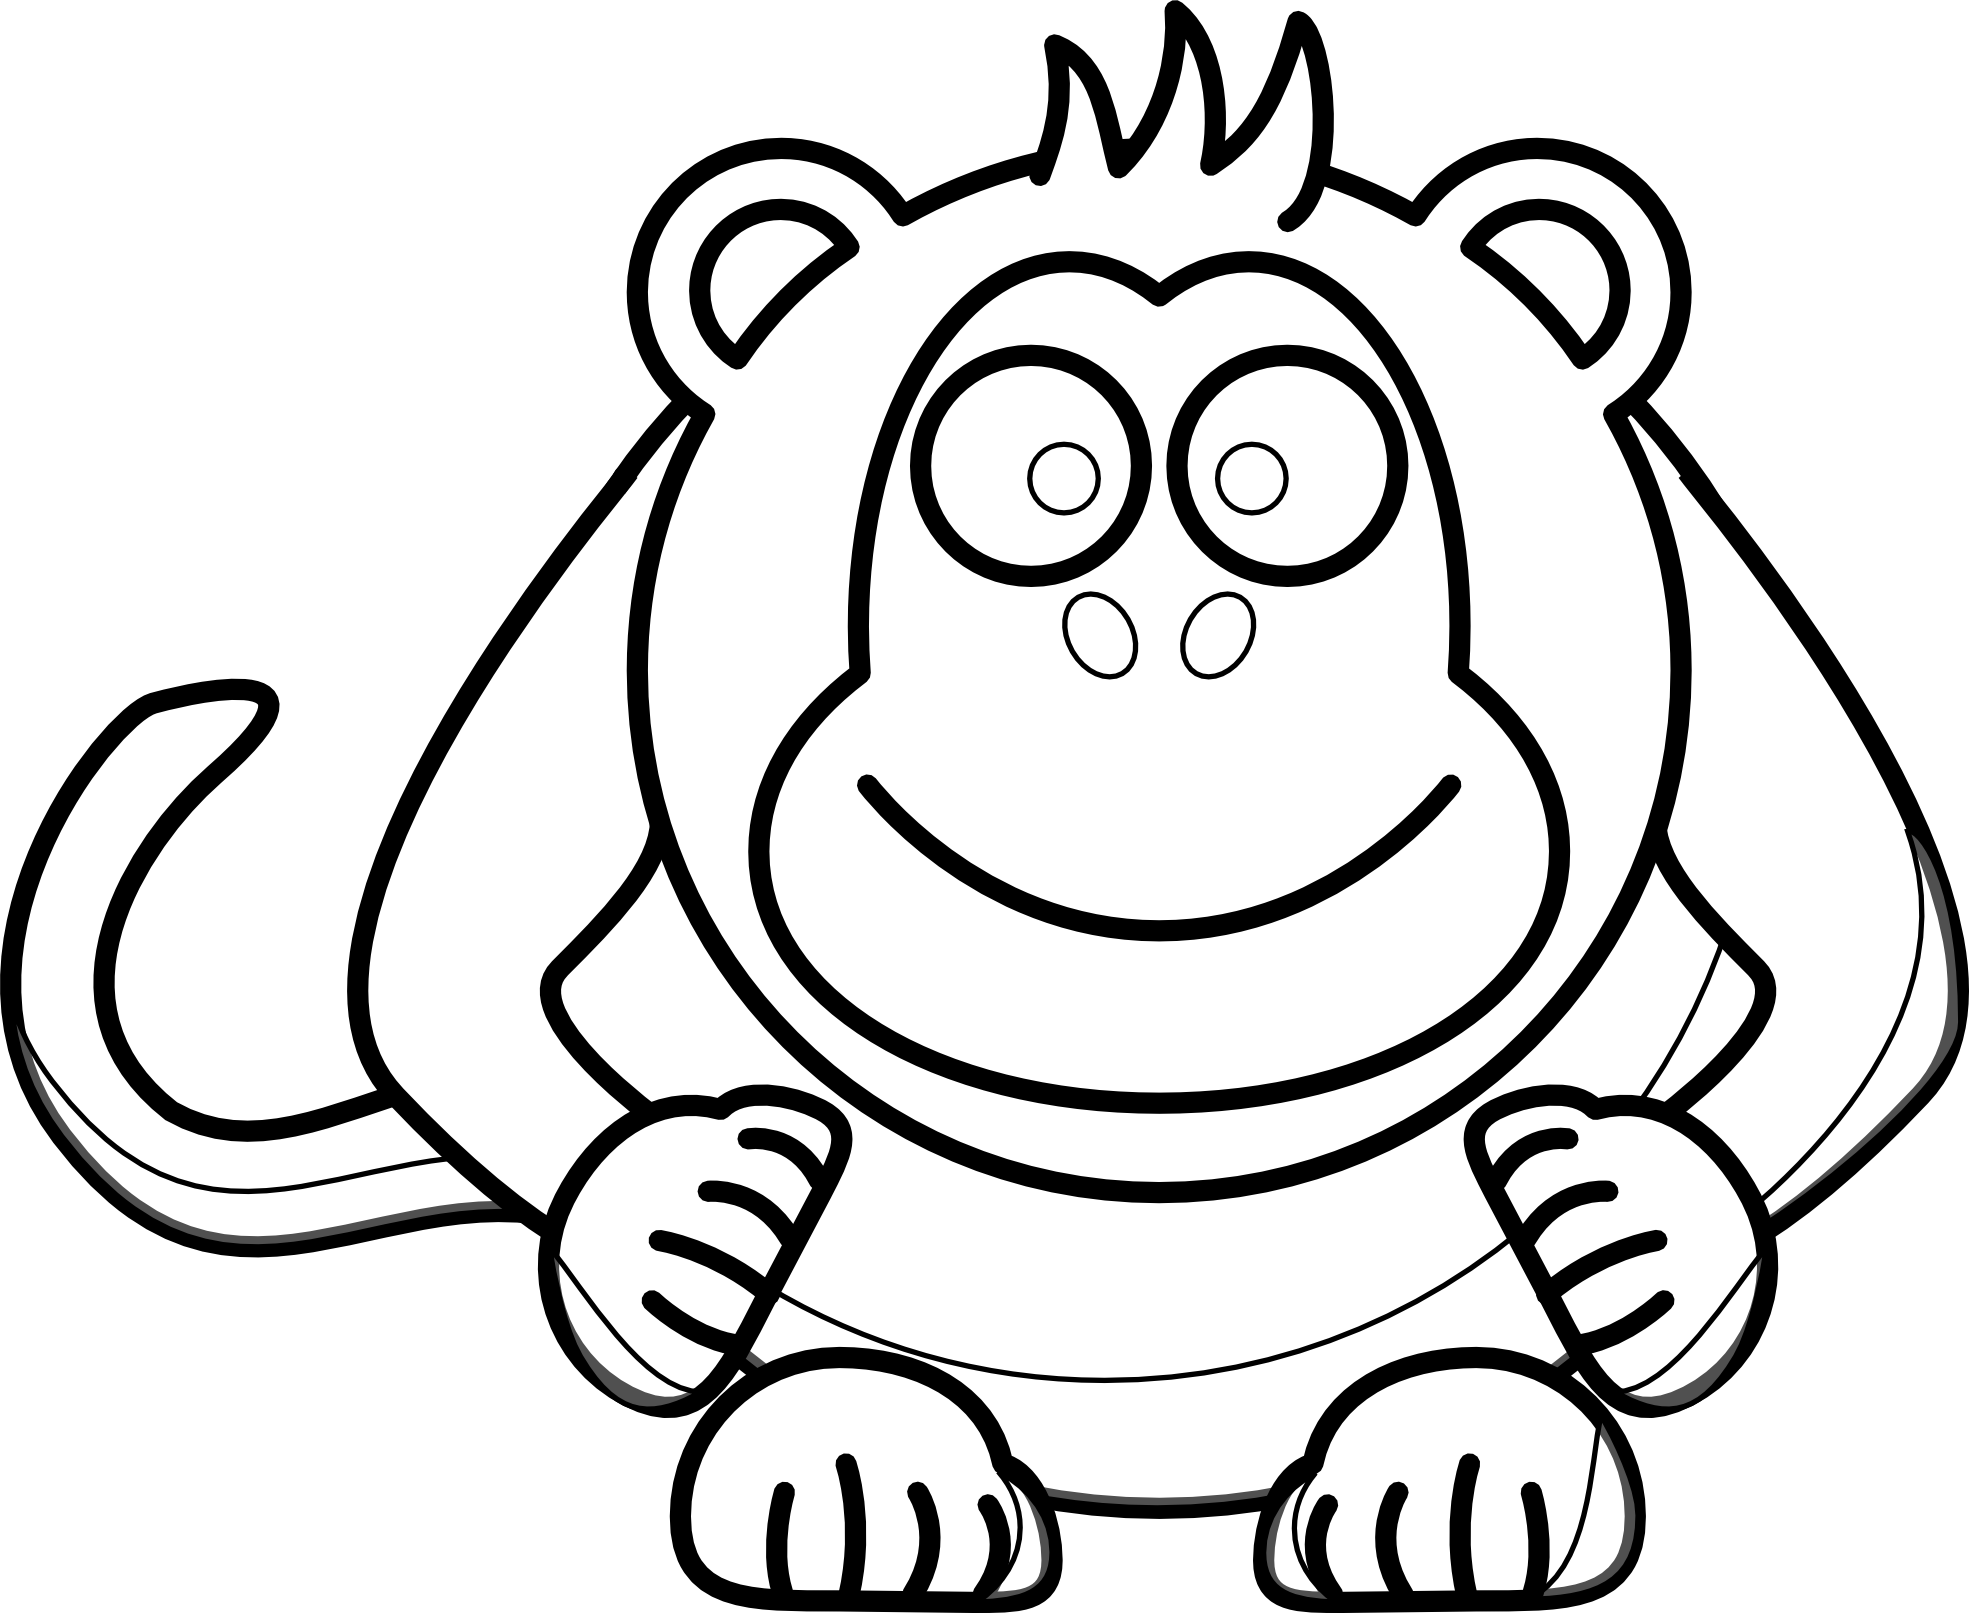 Monkey Coloring Book 1969×1613   Clipart Panda - Free Clipart Images